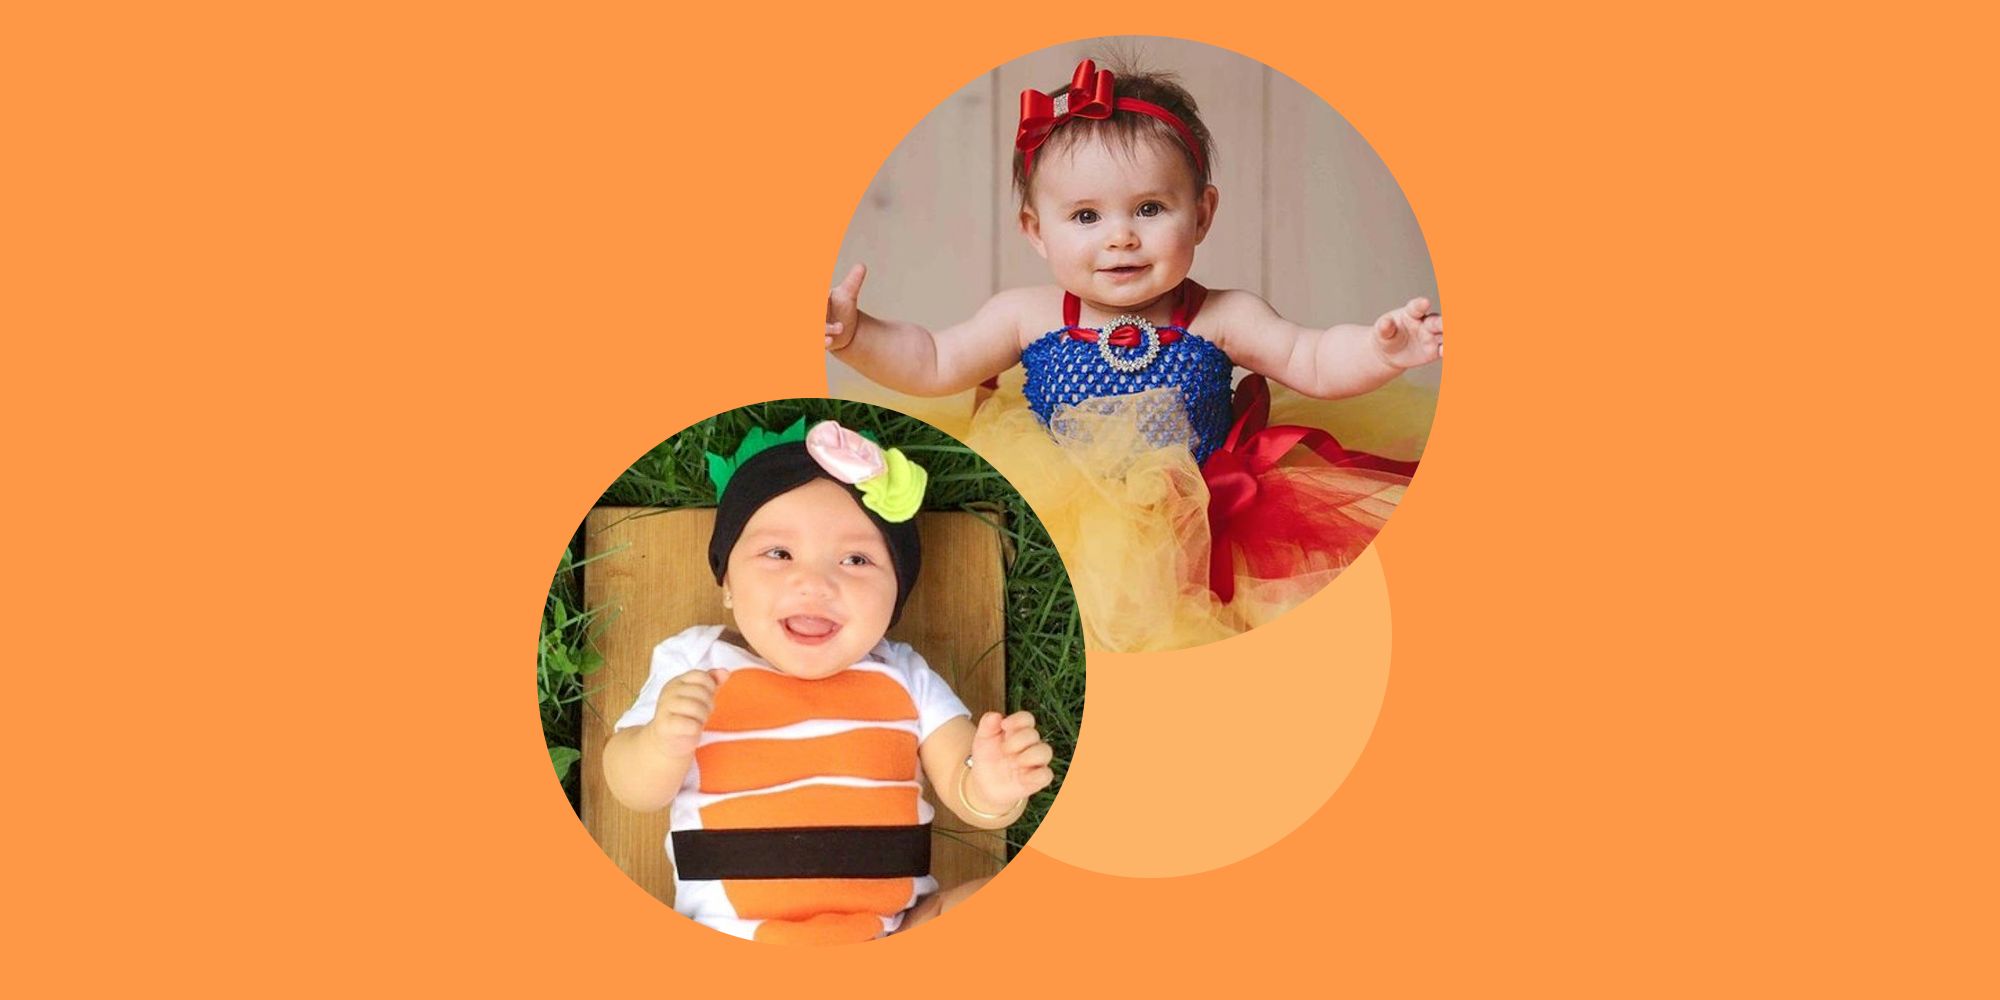 Cute Friend Halloween Costumes.35 Cute Baby Halloween Costumes Your Friends Haven T Thought